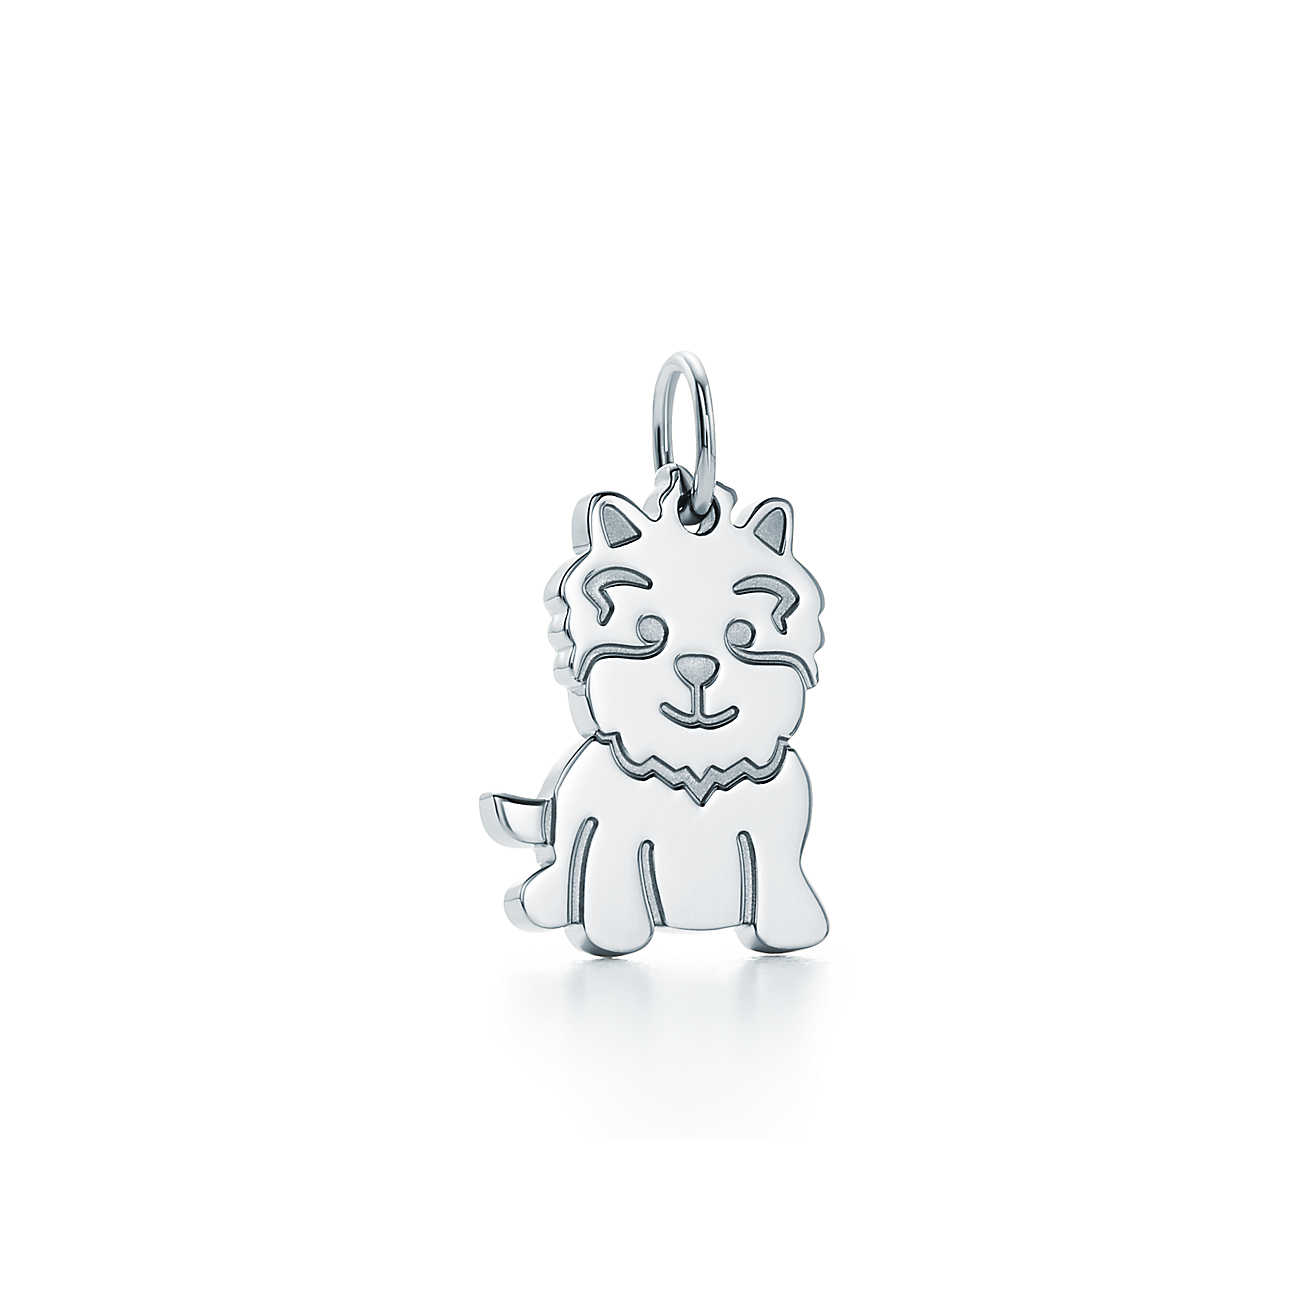 1308x1308 Tiffany Charms New Yorkie Charm In Sterling Silver. Tiffany Amp Co.